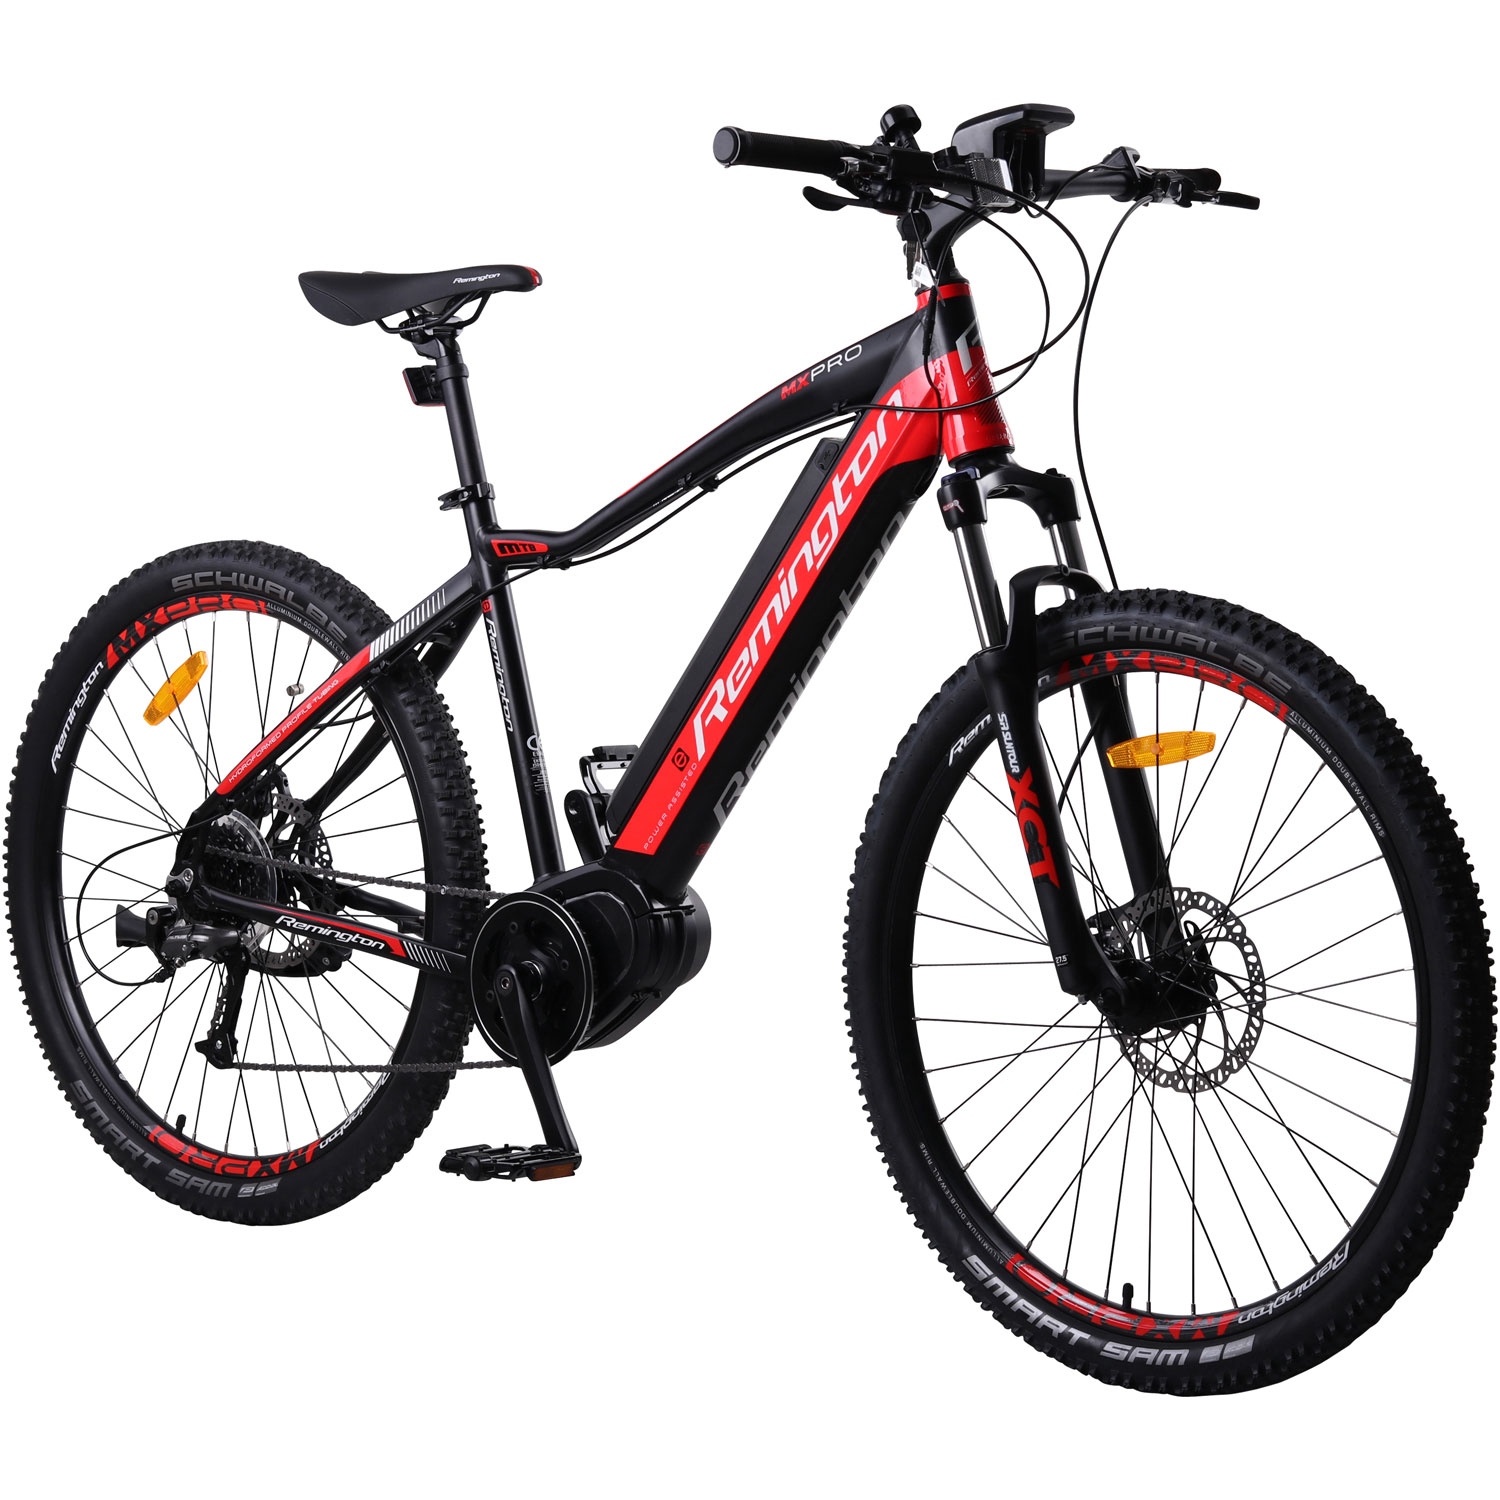 remington mx pro 650b 27 5 zoll mtb e bike mountainbike. Black Bedroom Furniture Sets. Home Design Ideas